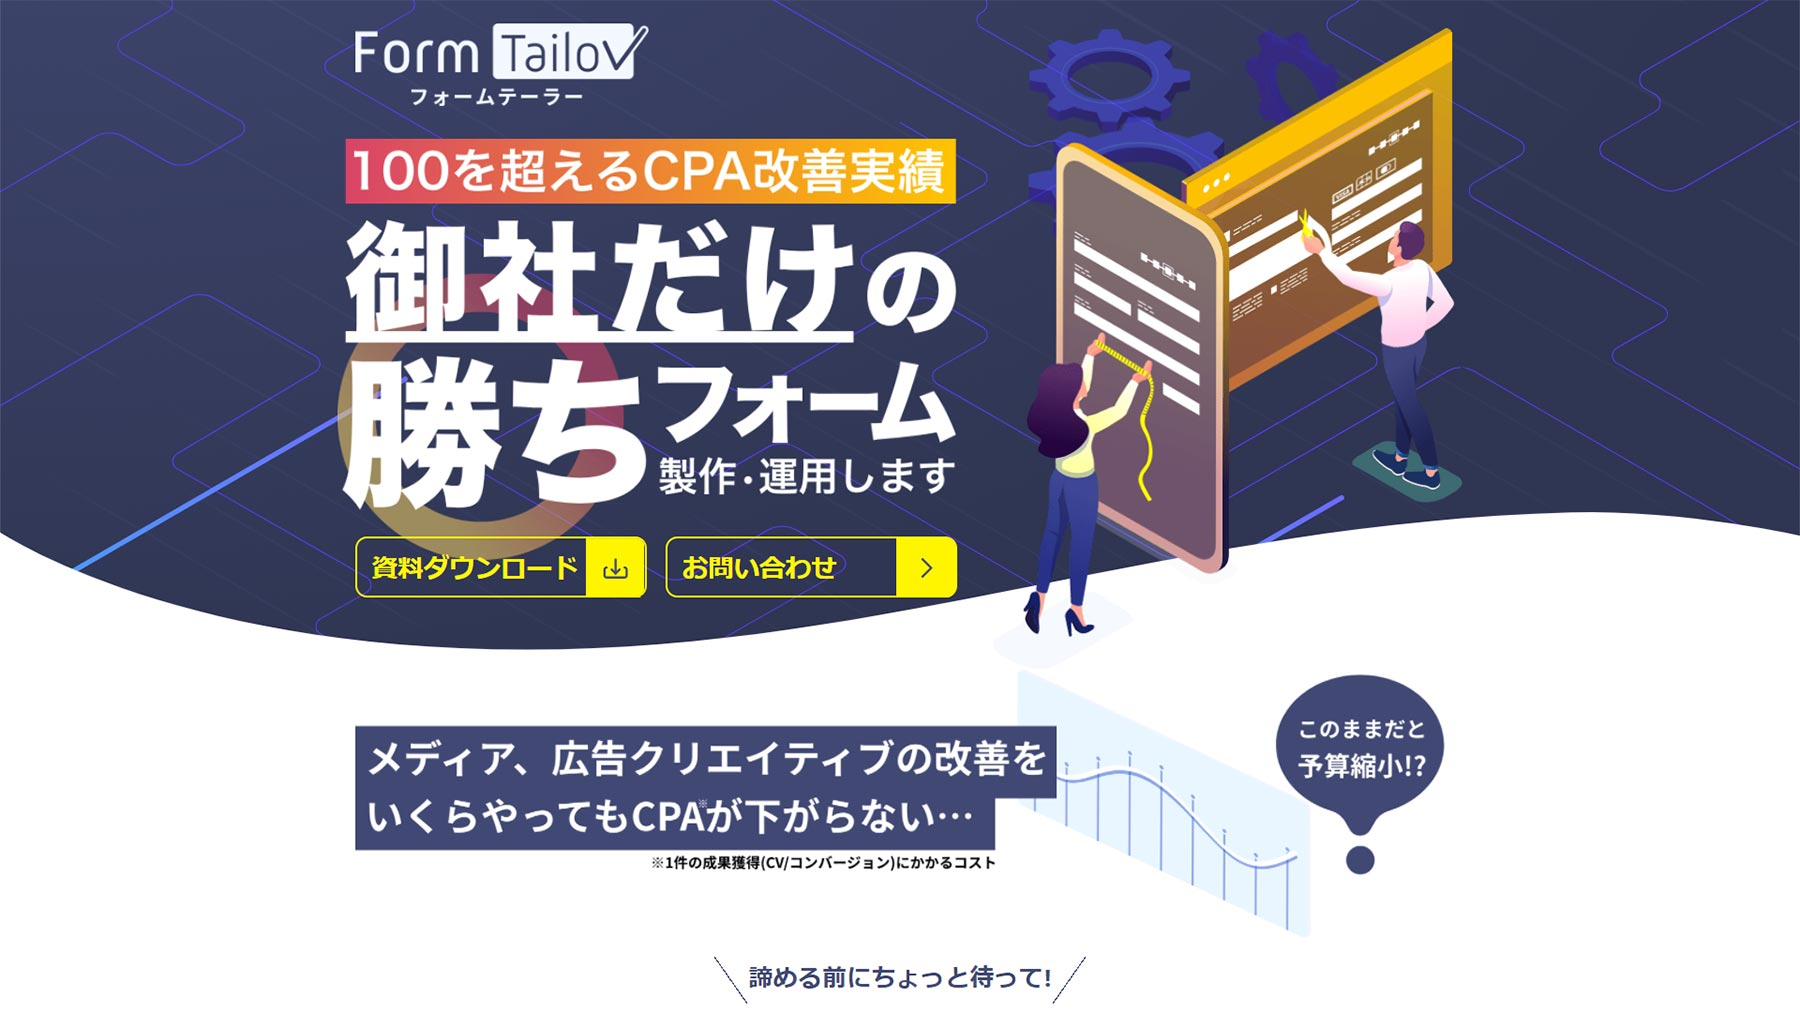 Form Tailor